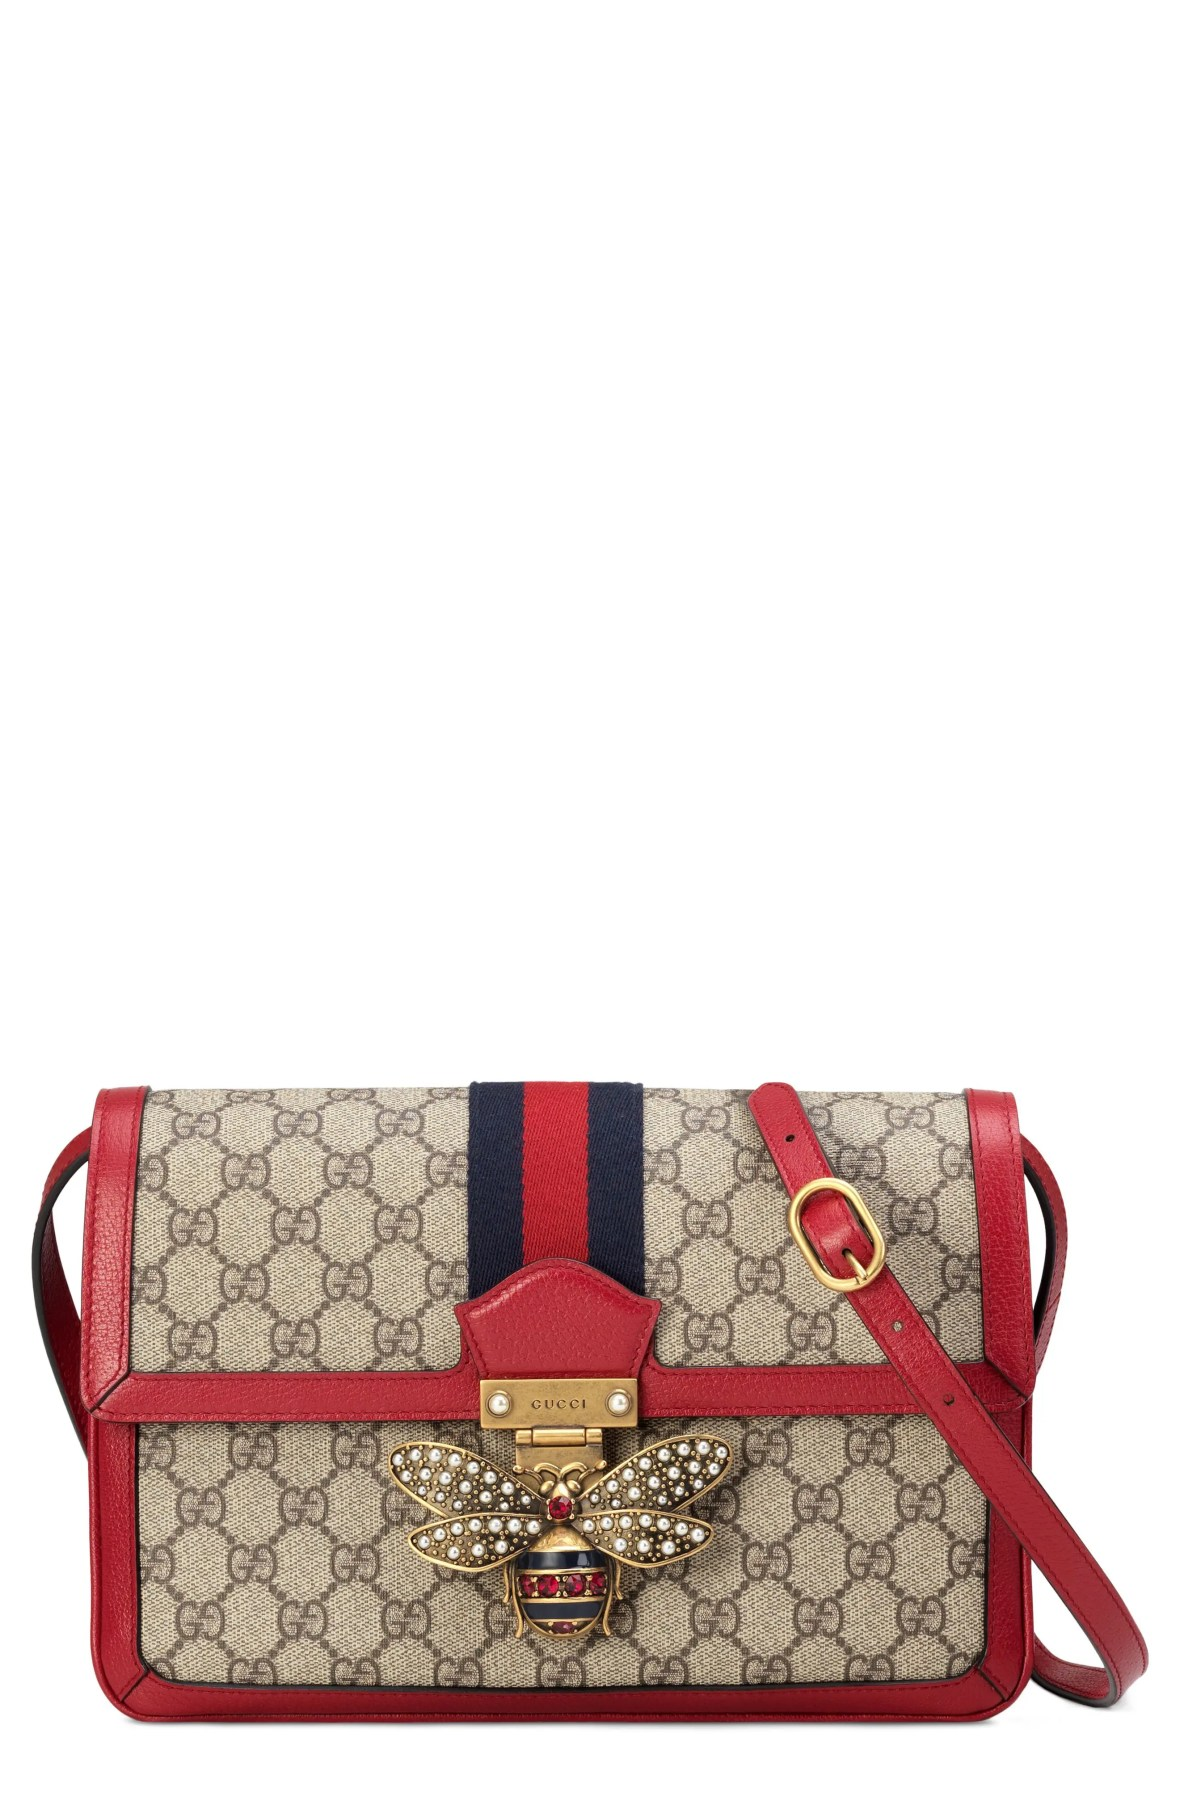 Gucci Queen Margaret GG Supreme Small Crossbody Bag